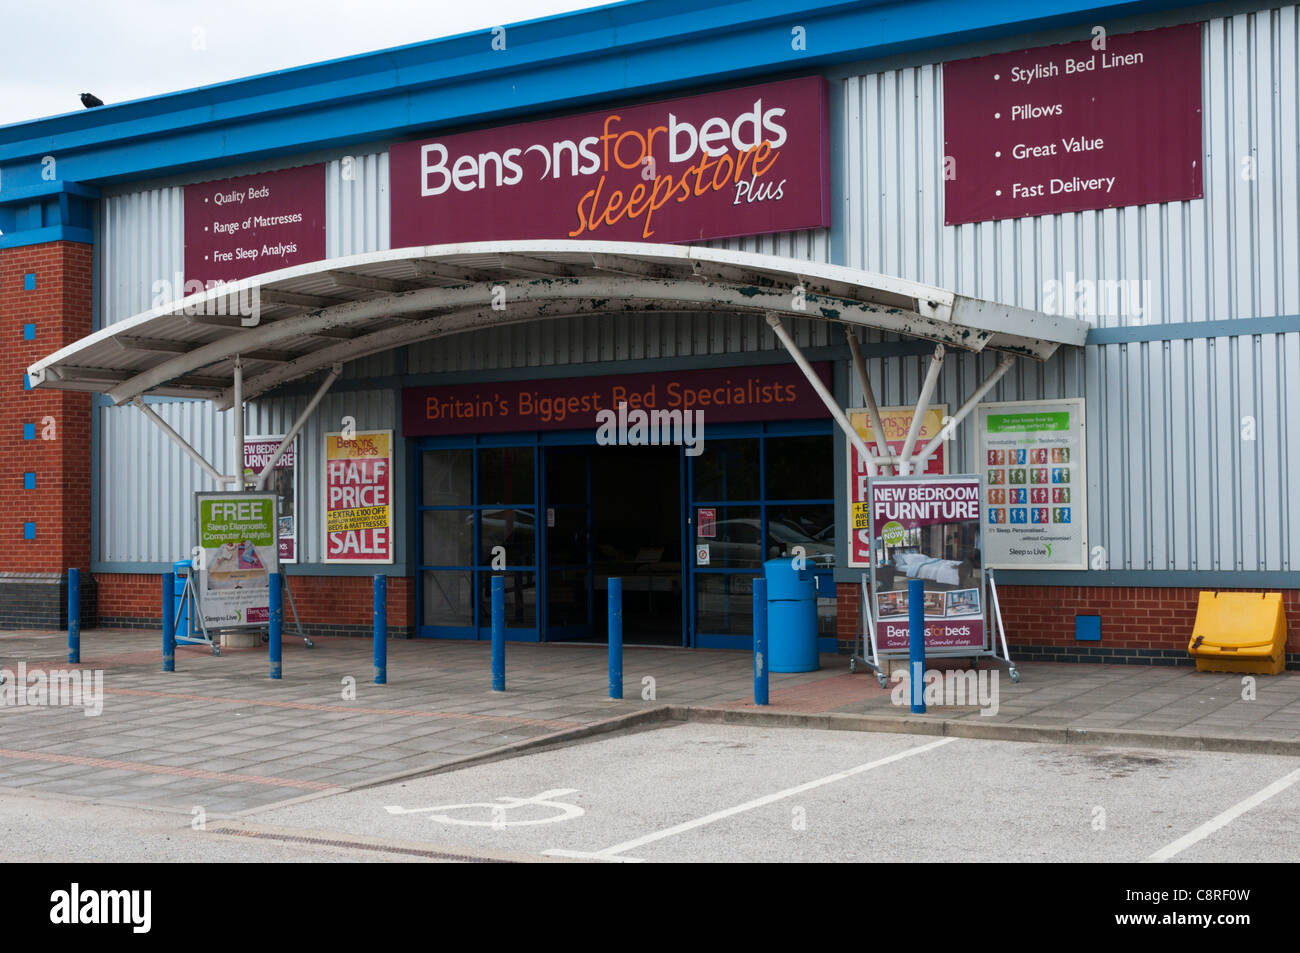 Bensons For Beds Stock Photos Amp Bensons For Beds Stock